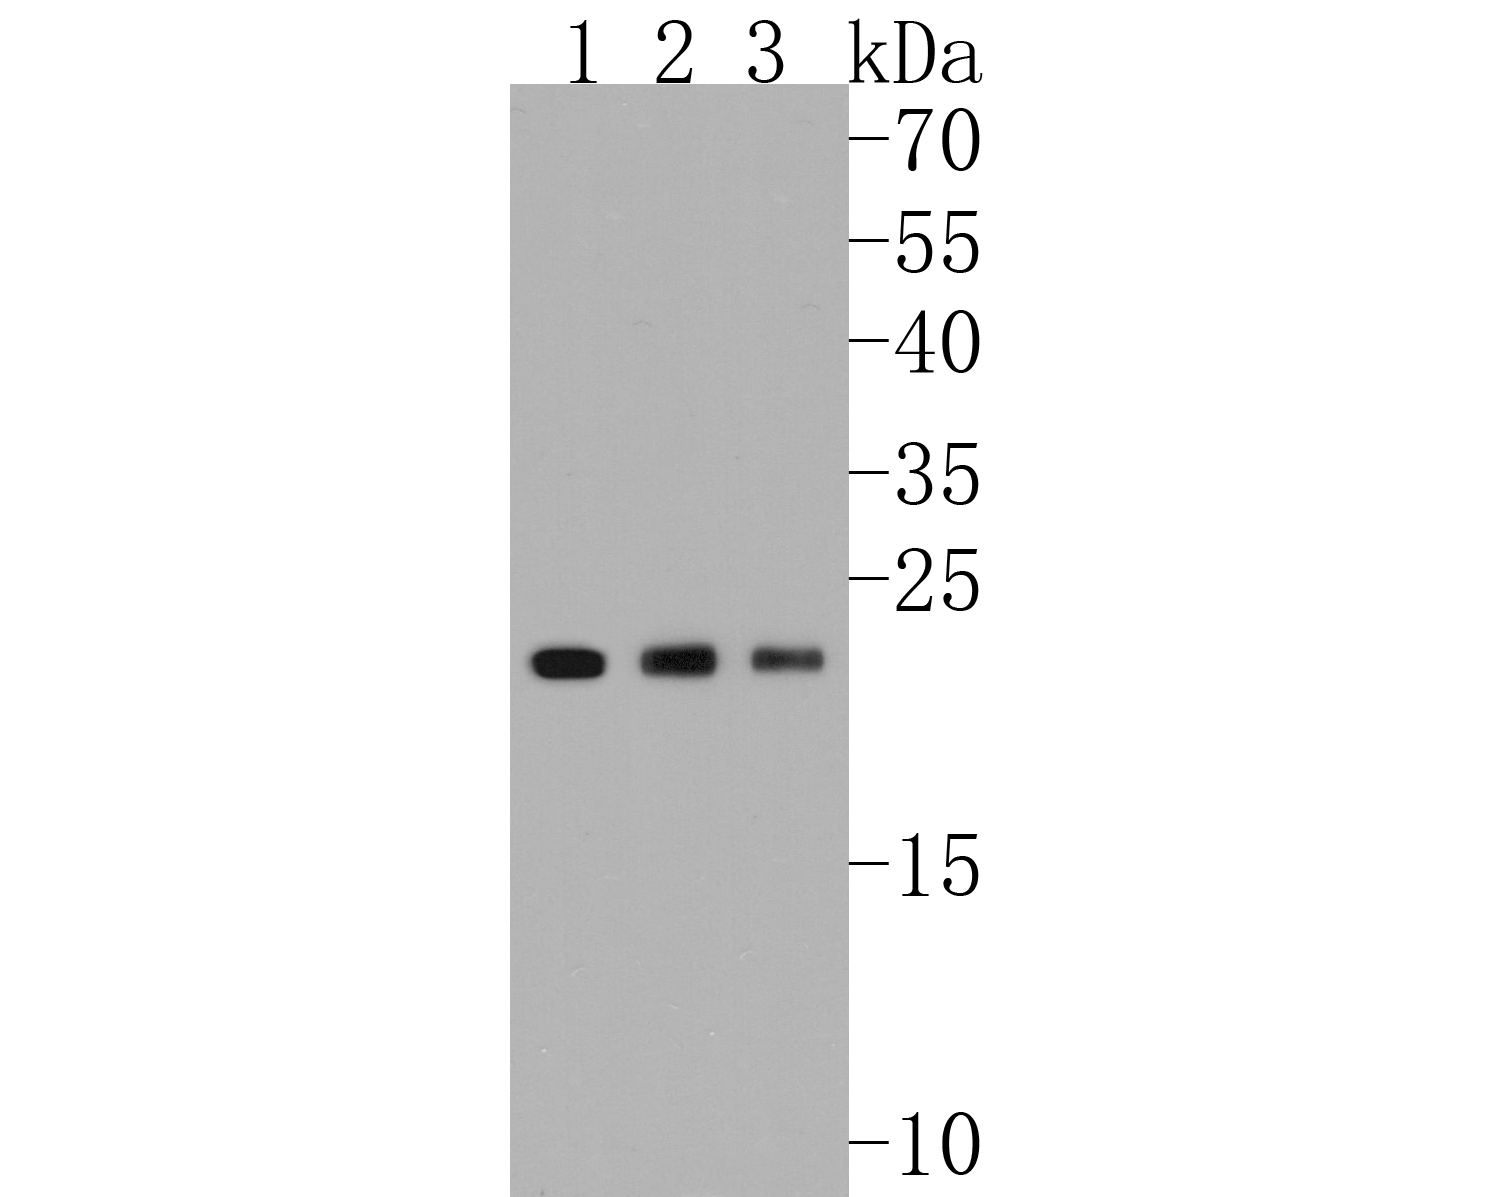 Western blot analysis of PARK7/DJ1 on different lysates. Proteins were transferred to a PVDF membrane and blocked with 5% BSA in PBS for 1 hour at room temperature. The primary antibody (ET1611-45, 1/500) was used in 5% BSA at room temperature for 2 hours. Goat Anti-Rabbit IgG - HRP Secondary Antibody (HA1001) at 1:5,000 dilution was used for 1 hour at room temperature.<br />  Positive control: <br />  Lane 1: Hela cell lysate<br />  Lane 2: Jurkat cell lysate<br />  Lane 3: NIH/3T3 cell lysate